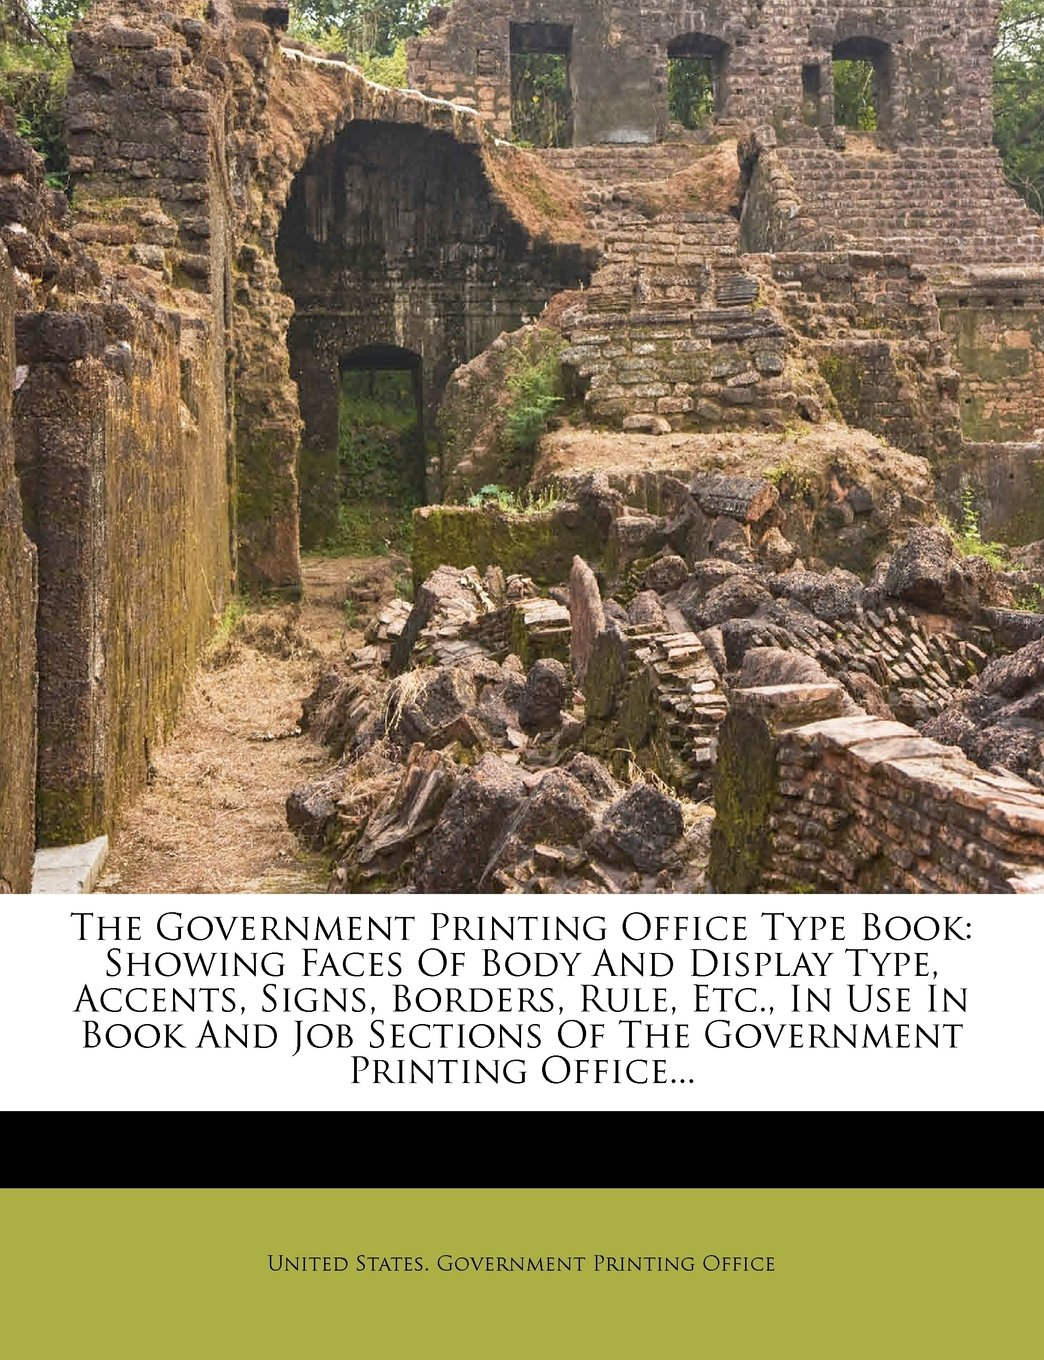 Download The Government Printing Office Type Book: Showing Faces Of Body And Display Type, Accents, Signs, Borders, Rule, Etc., In Use In Book And Job Sections Of The Government Printing Office... pdf epub